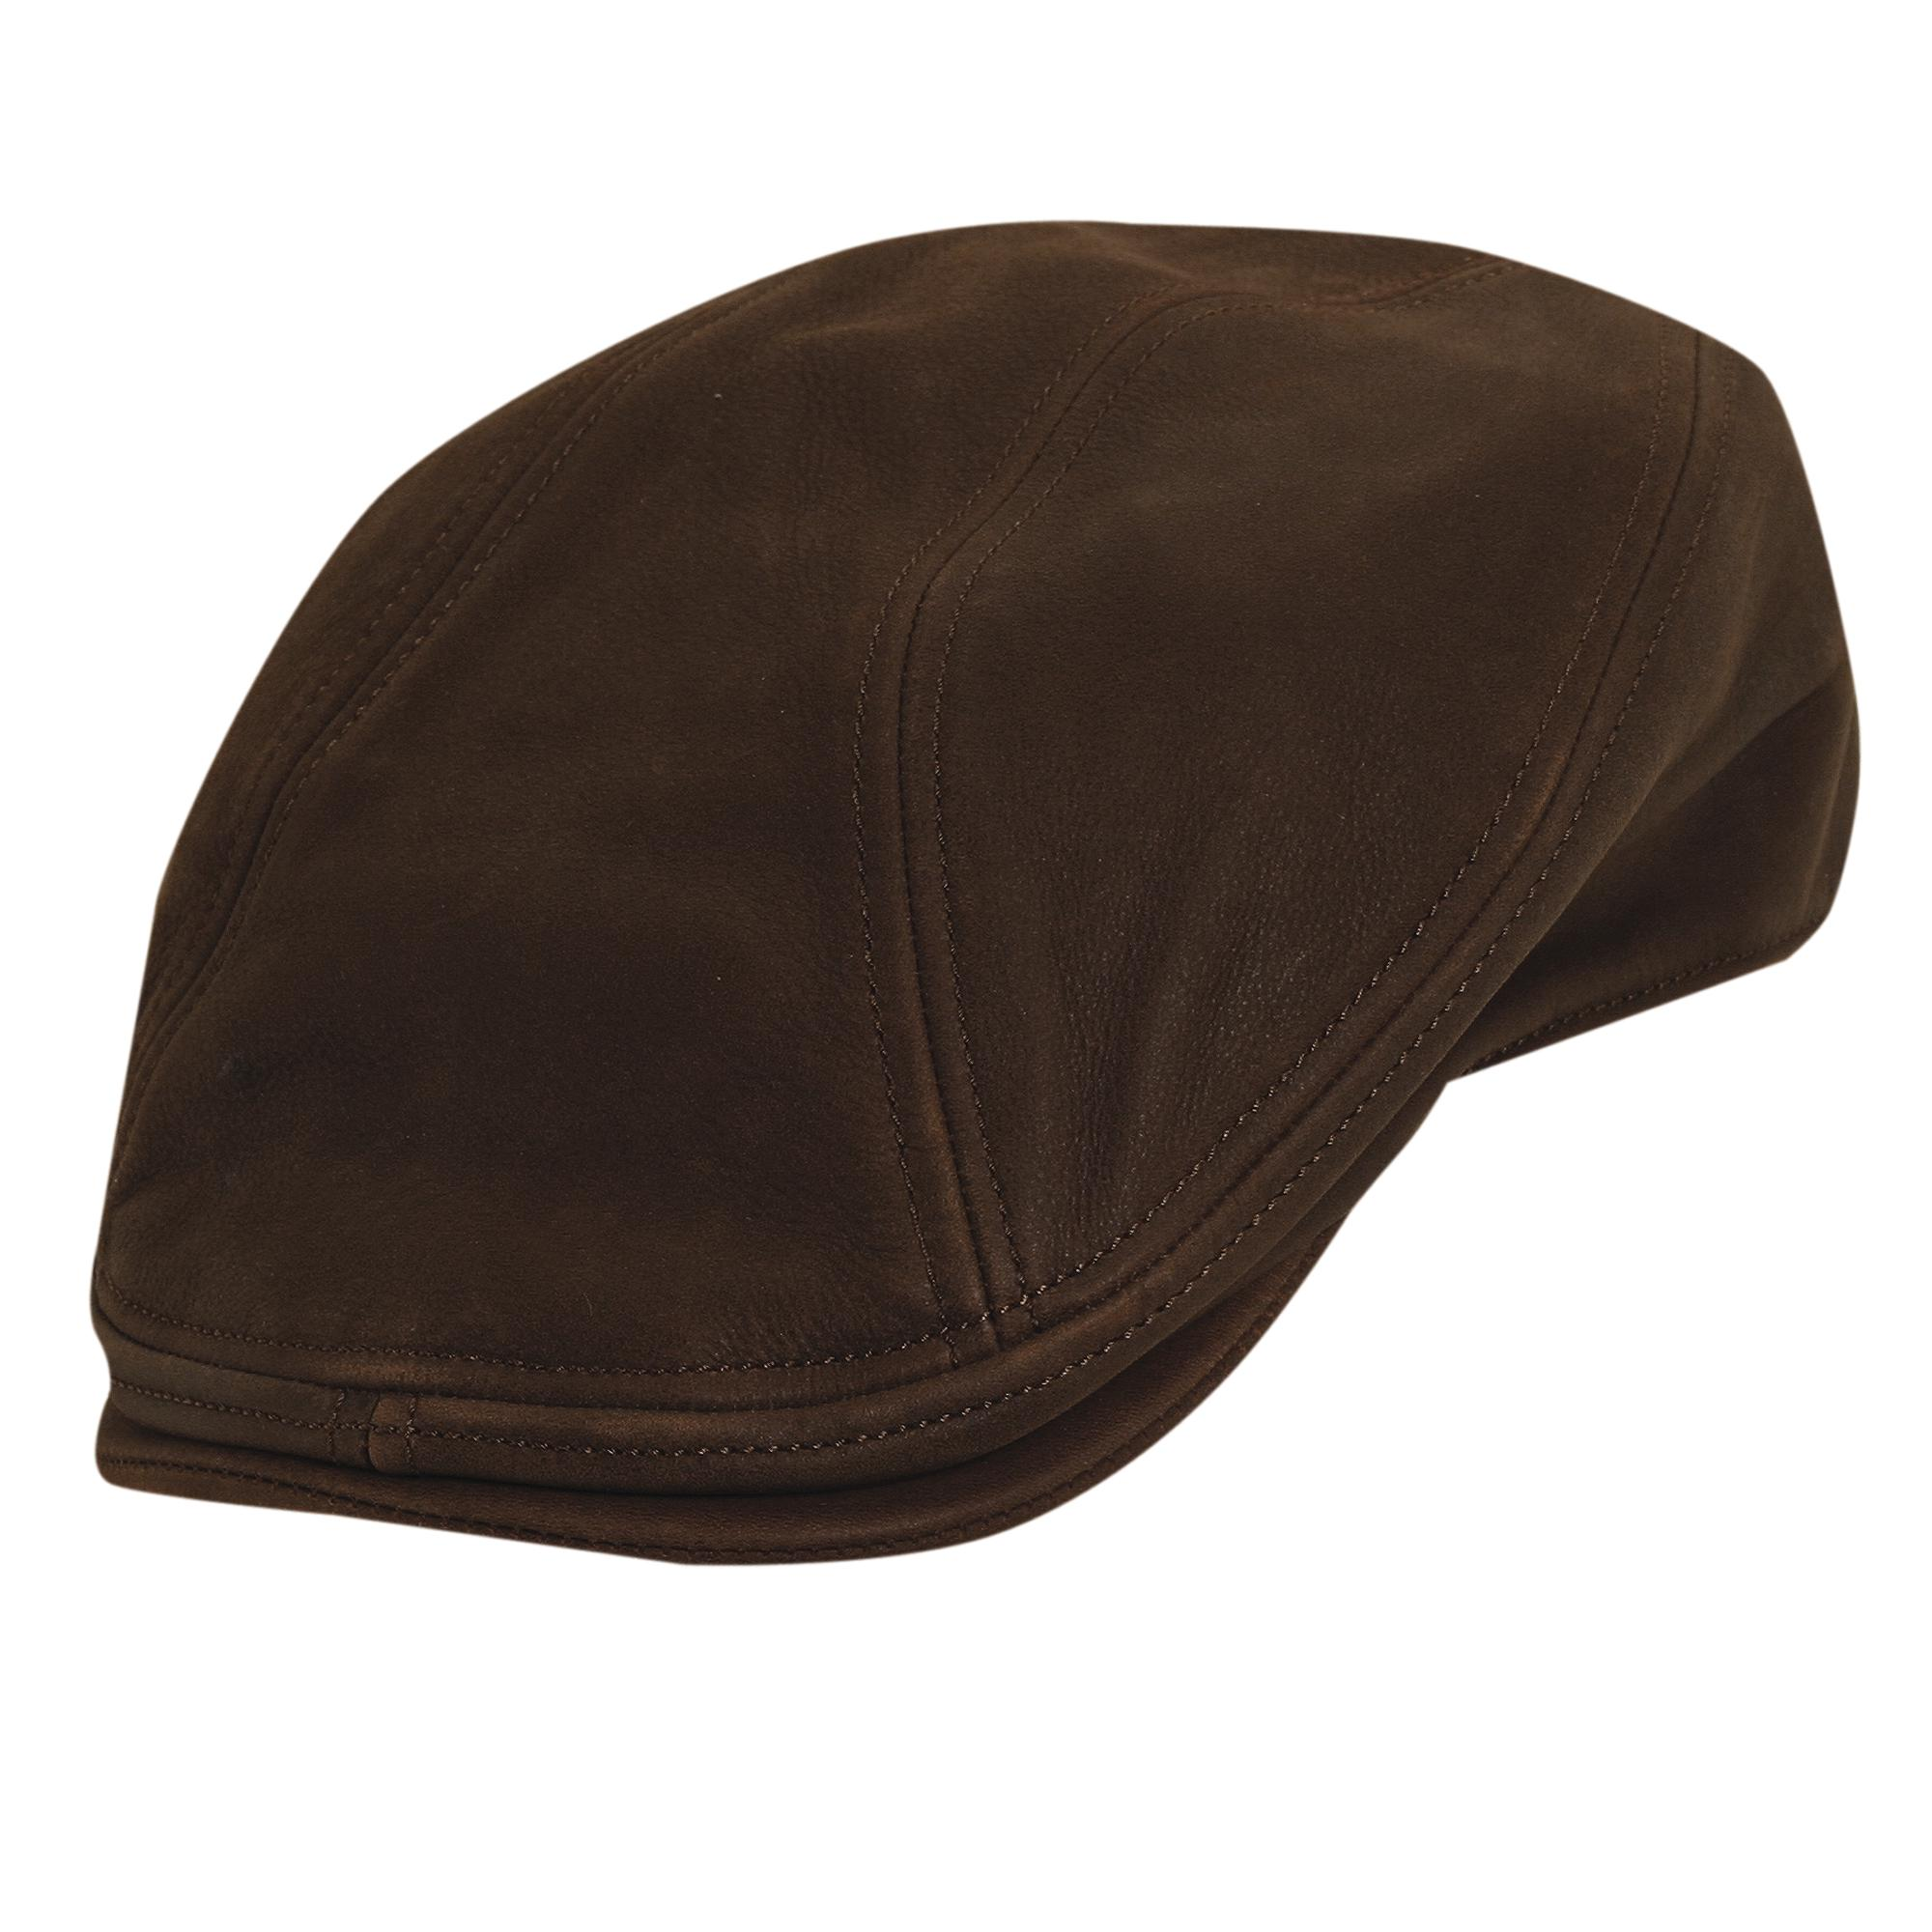 Stetson Men's Timber Ivy Cap Satin Lining